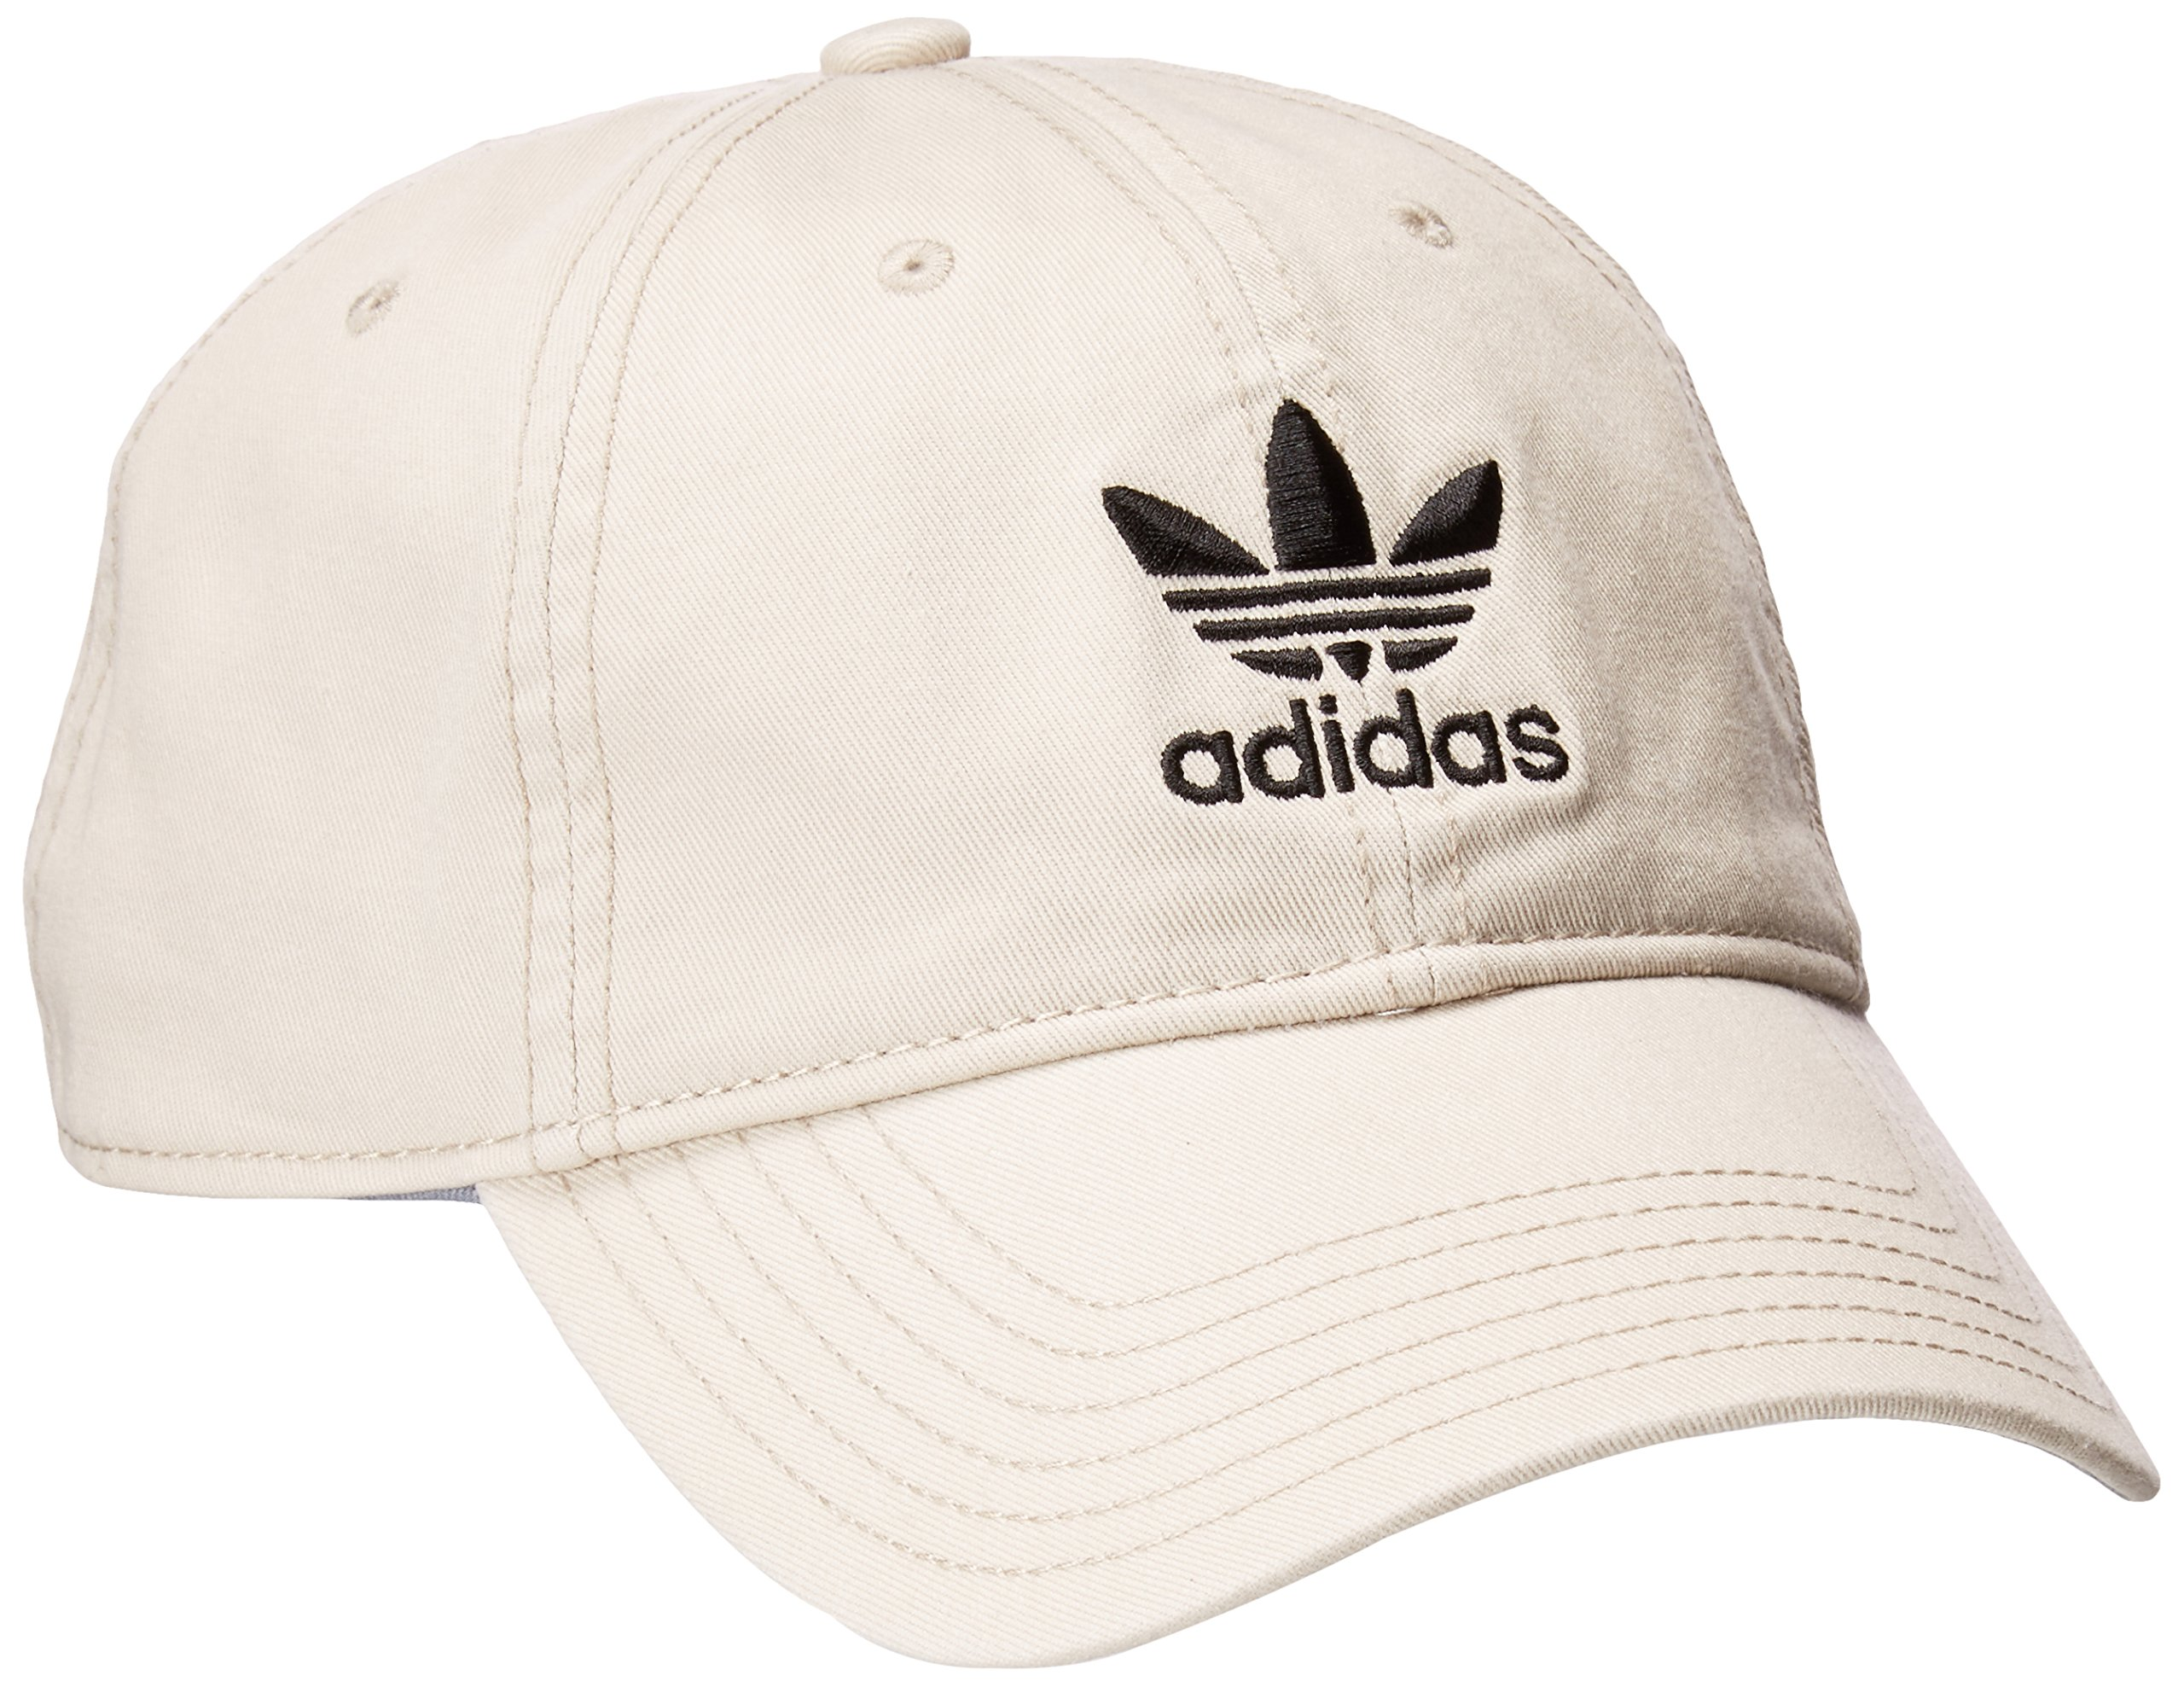 adidas Men's Originals Relaxed Fit Strapback Khaki Cap, One Size, Khaki Strapback 3beb65